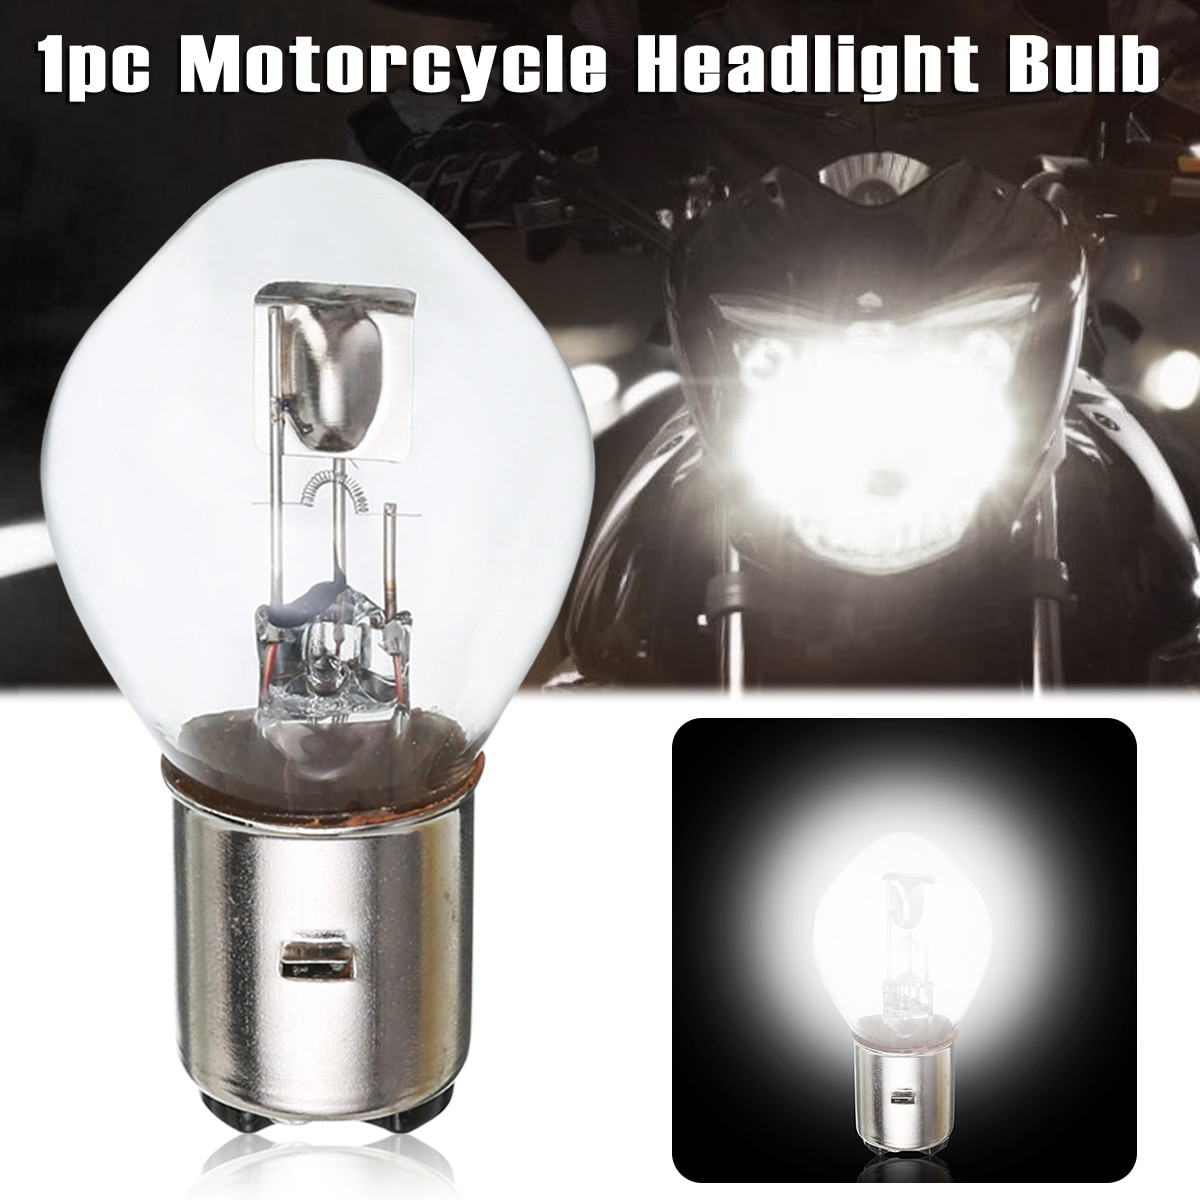 1pc Motorcycle B35 BA20D 12V 10A 35W Headlight Light Bulb For Moto Scooter ATV White Lamp Accessories Parts